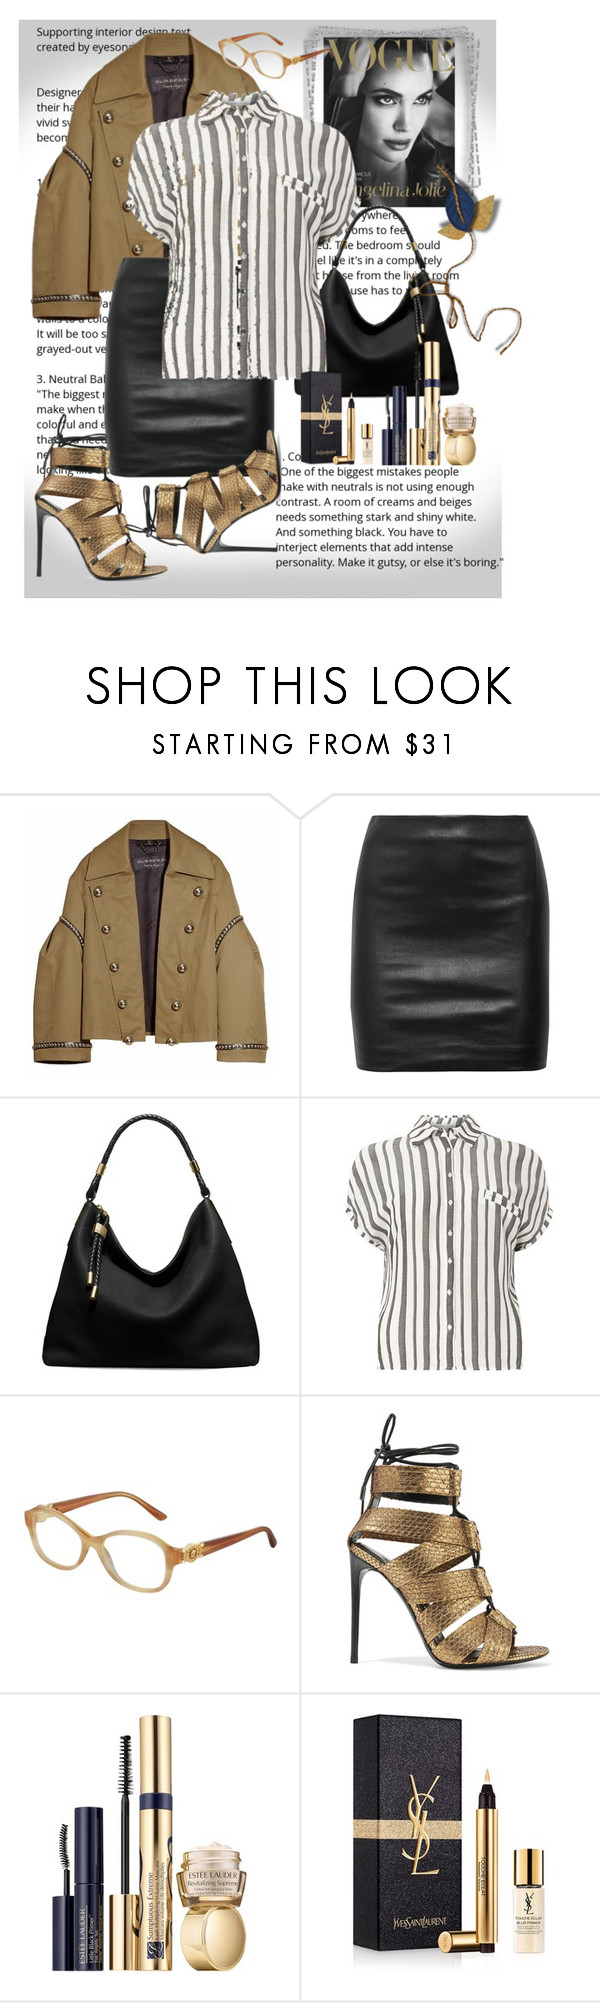 """stripe"" by metka-belina ❤ liked on Polyvore featuring Burberry, The Row, Michael Kors, Dorothy Perkins, Versace, Tom Ford, Estée Lauder and Yves Saint Laurent"